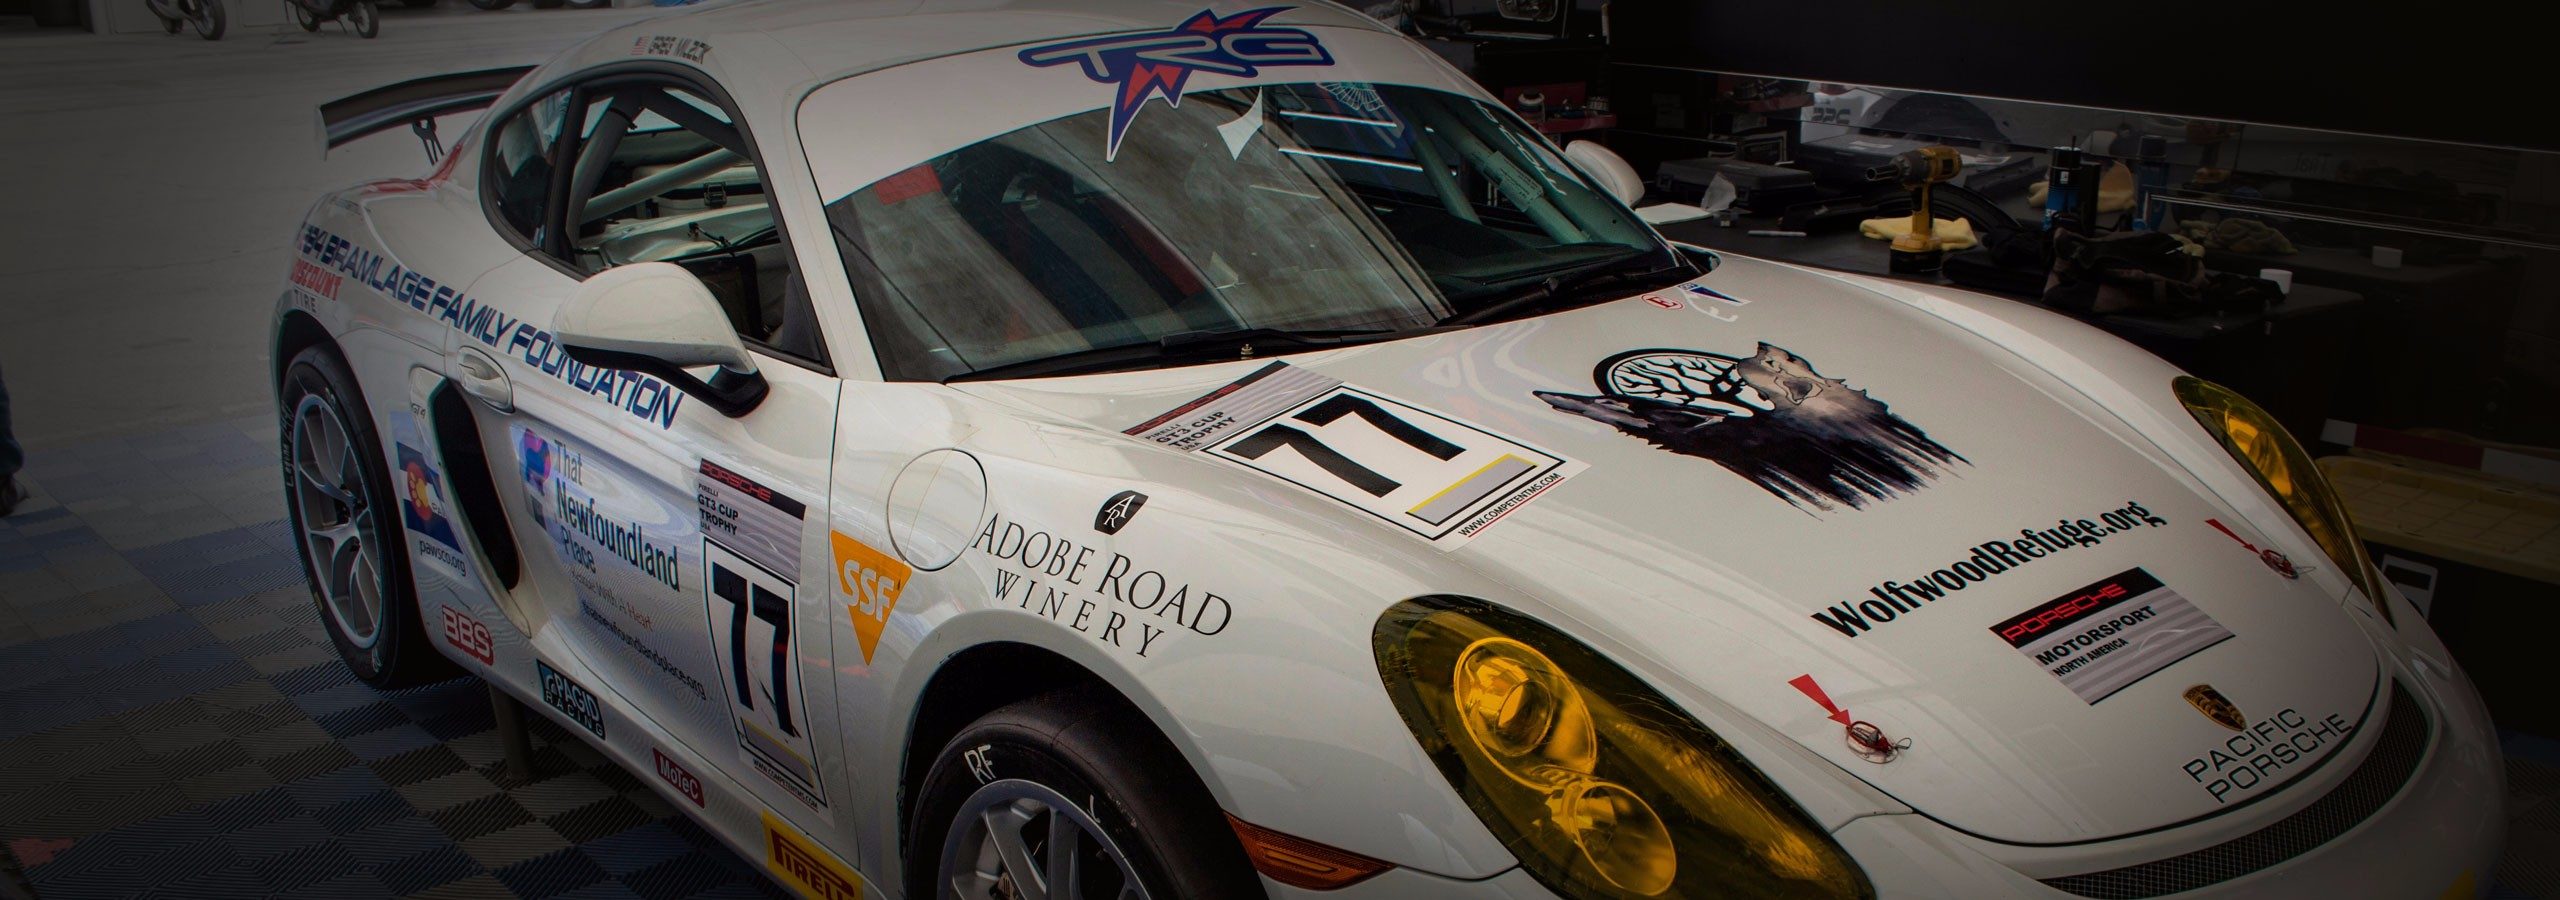 TRG Porsche Completes Double-Header Race Weekend at Laguna Seca